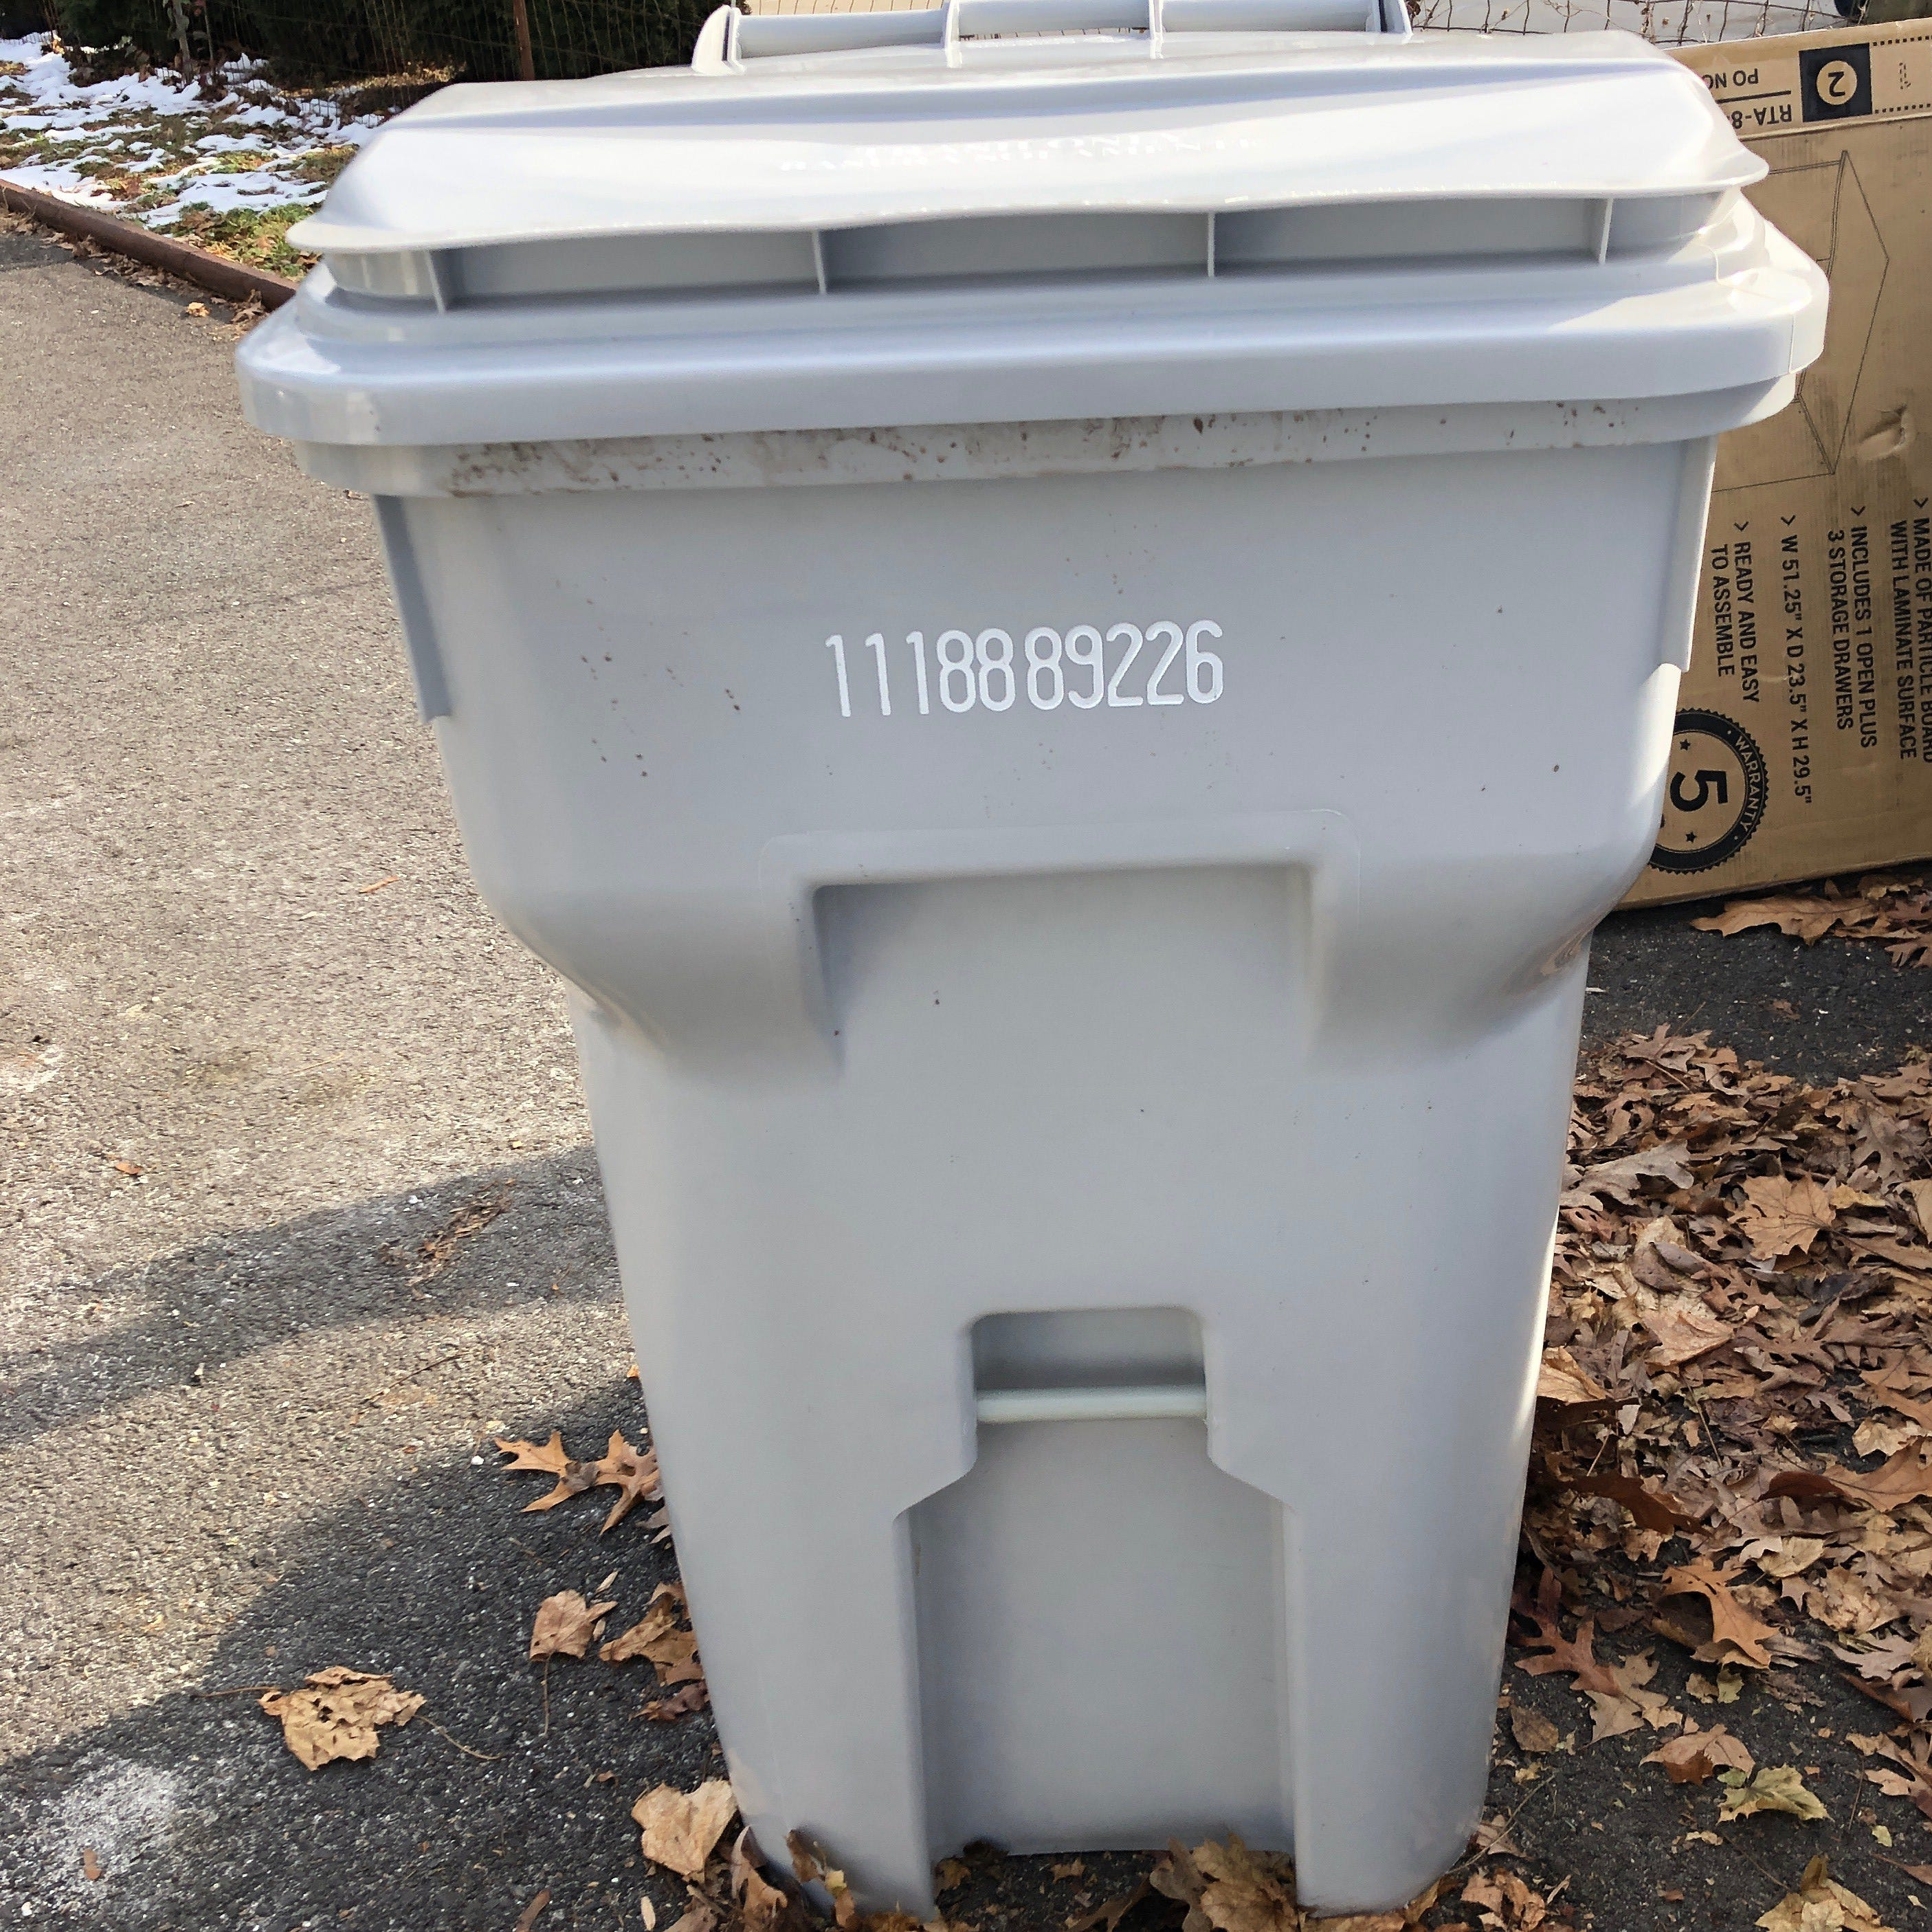 LETTER: Don't make seniors wait for smaller trash bins